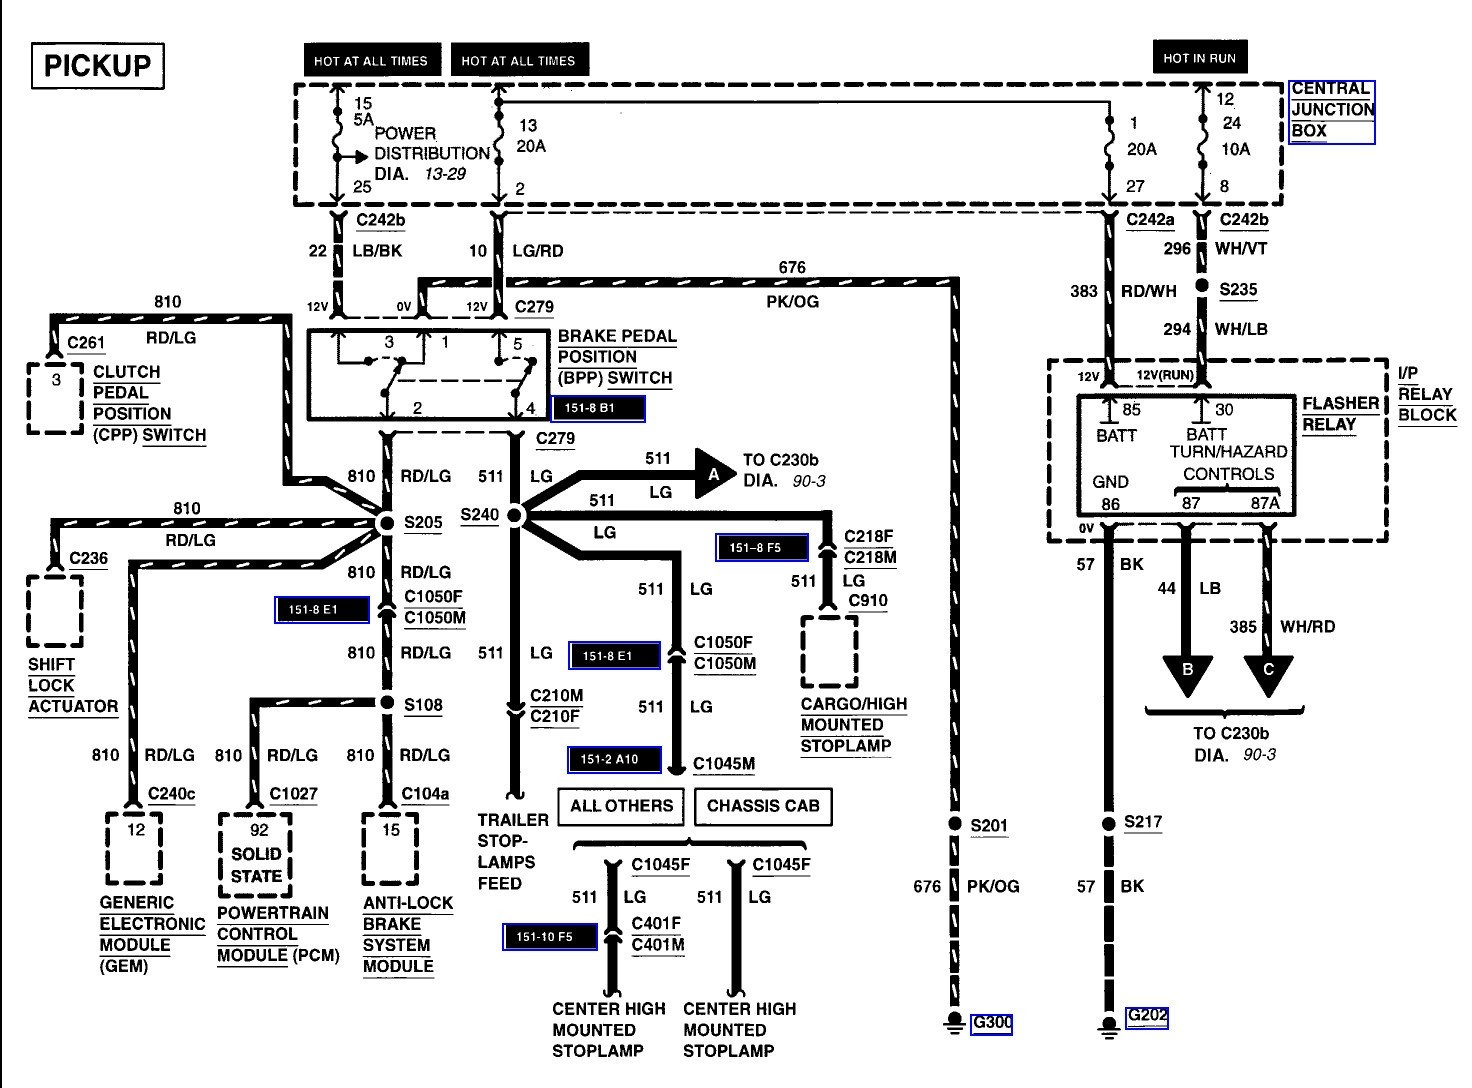 2001 ford f250 wiring diagram inspirational 2001 f350 wiring diagram daigram in ford of 2001 ford f250 wiring diagram